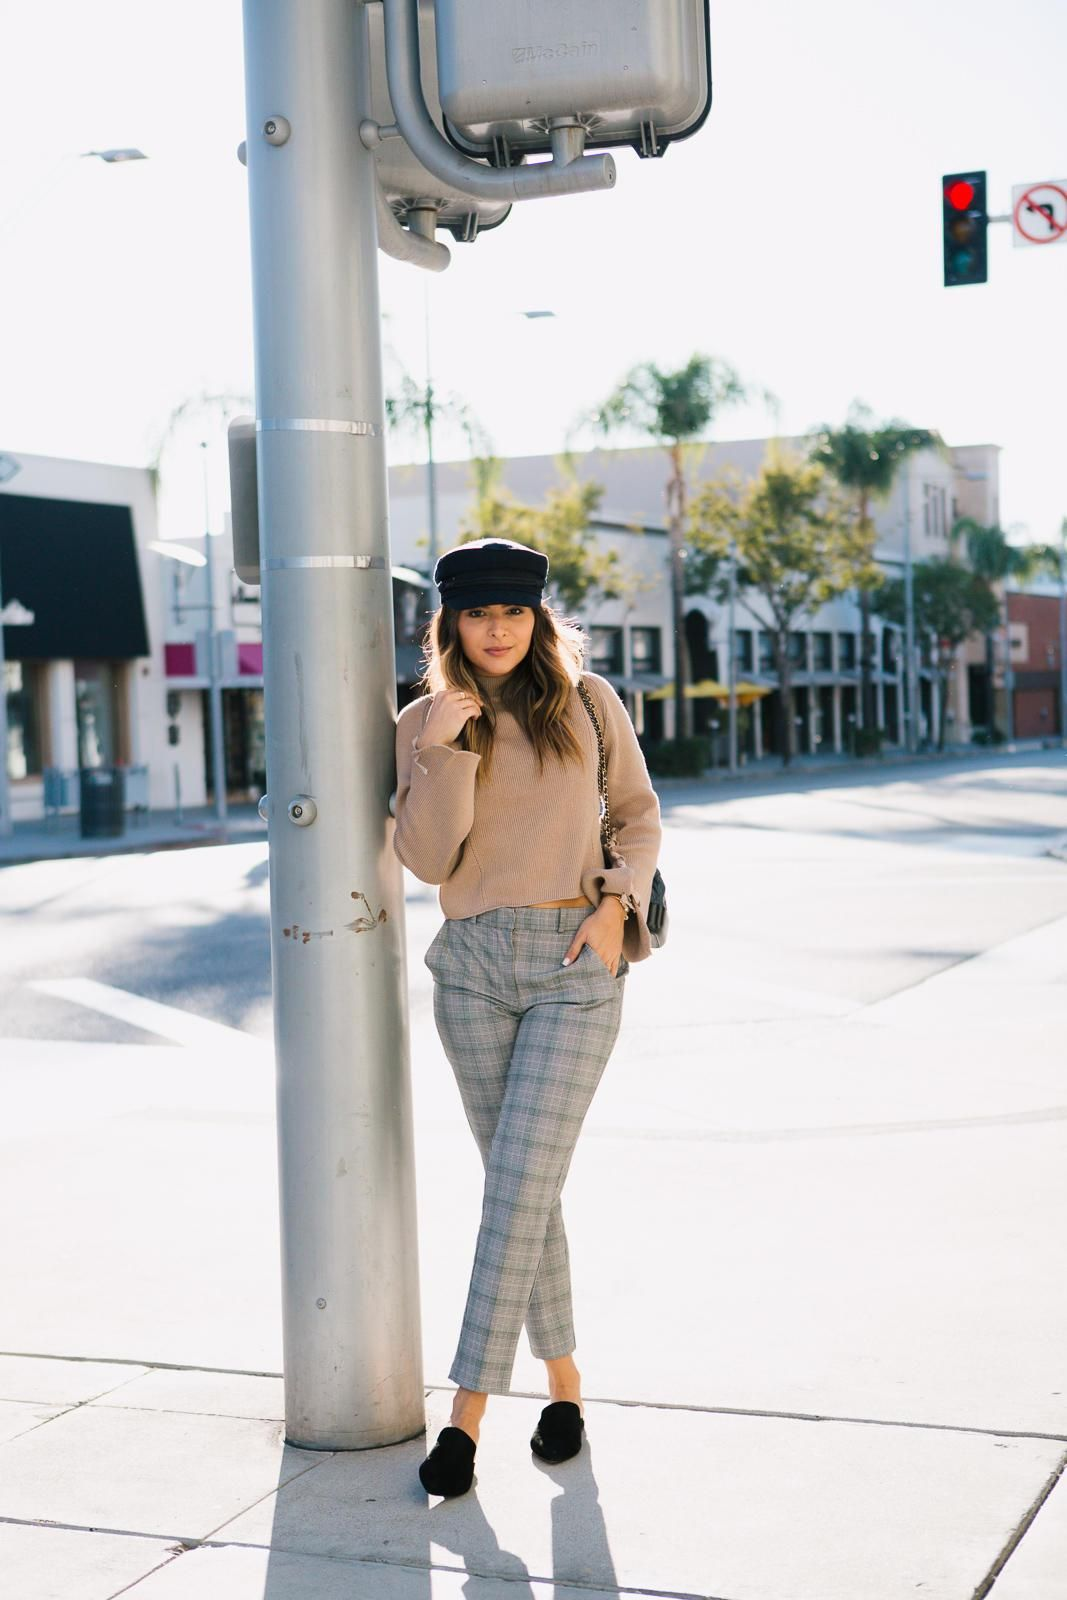 Chic Pants Are A Must-Have This Season